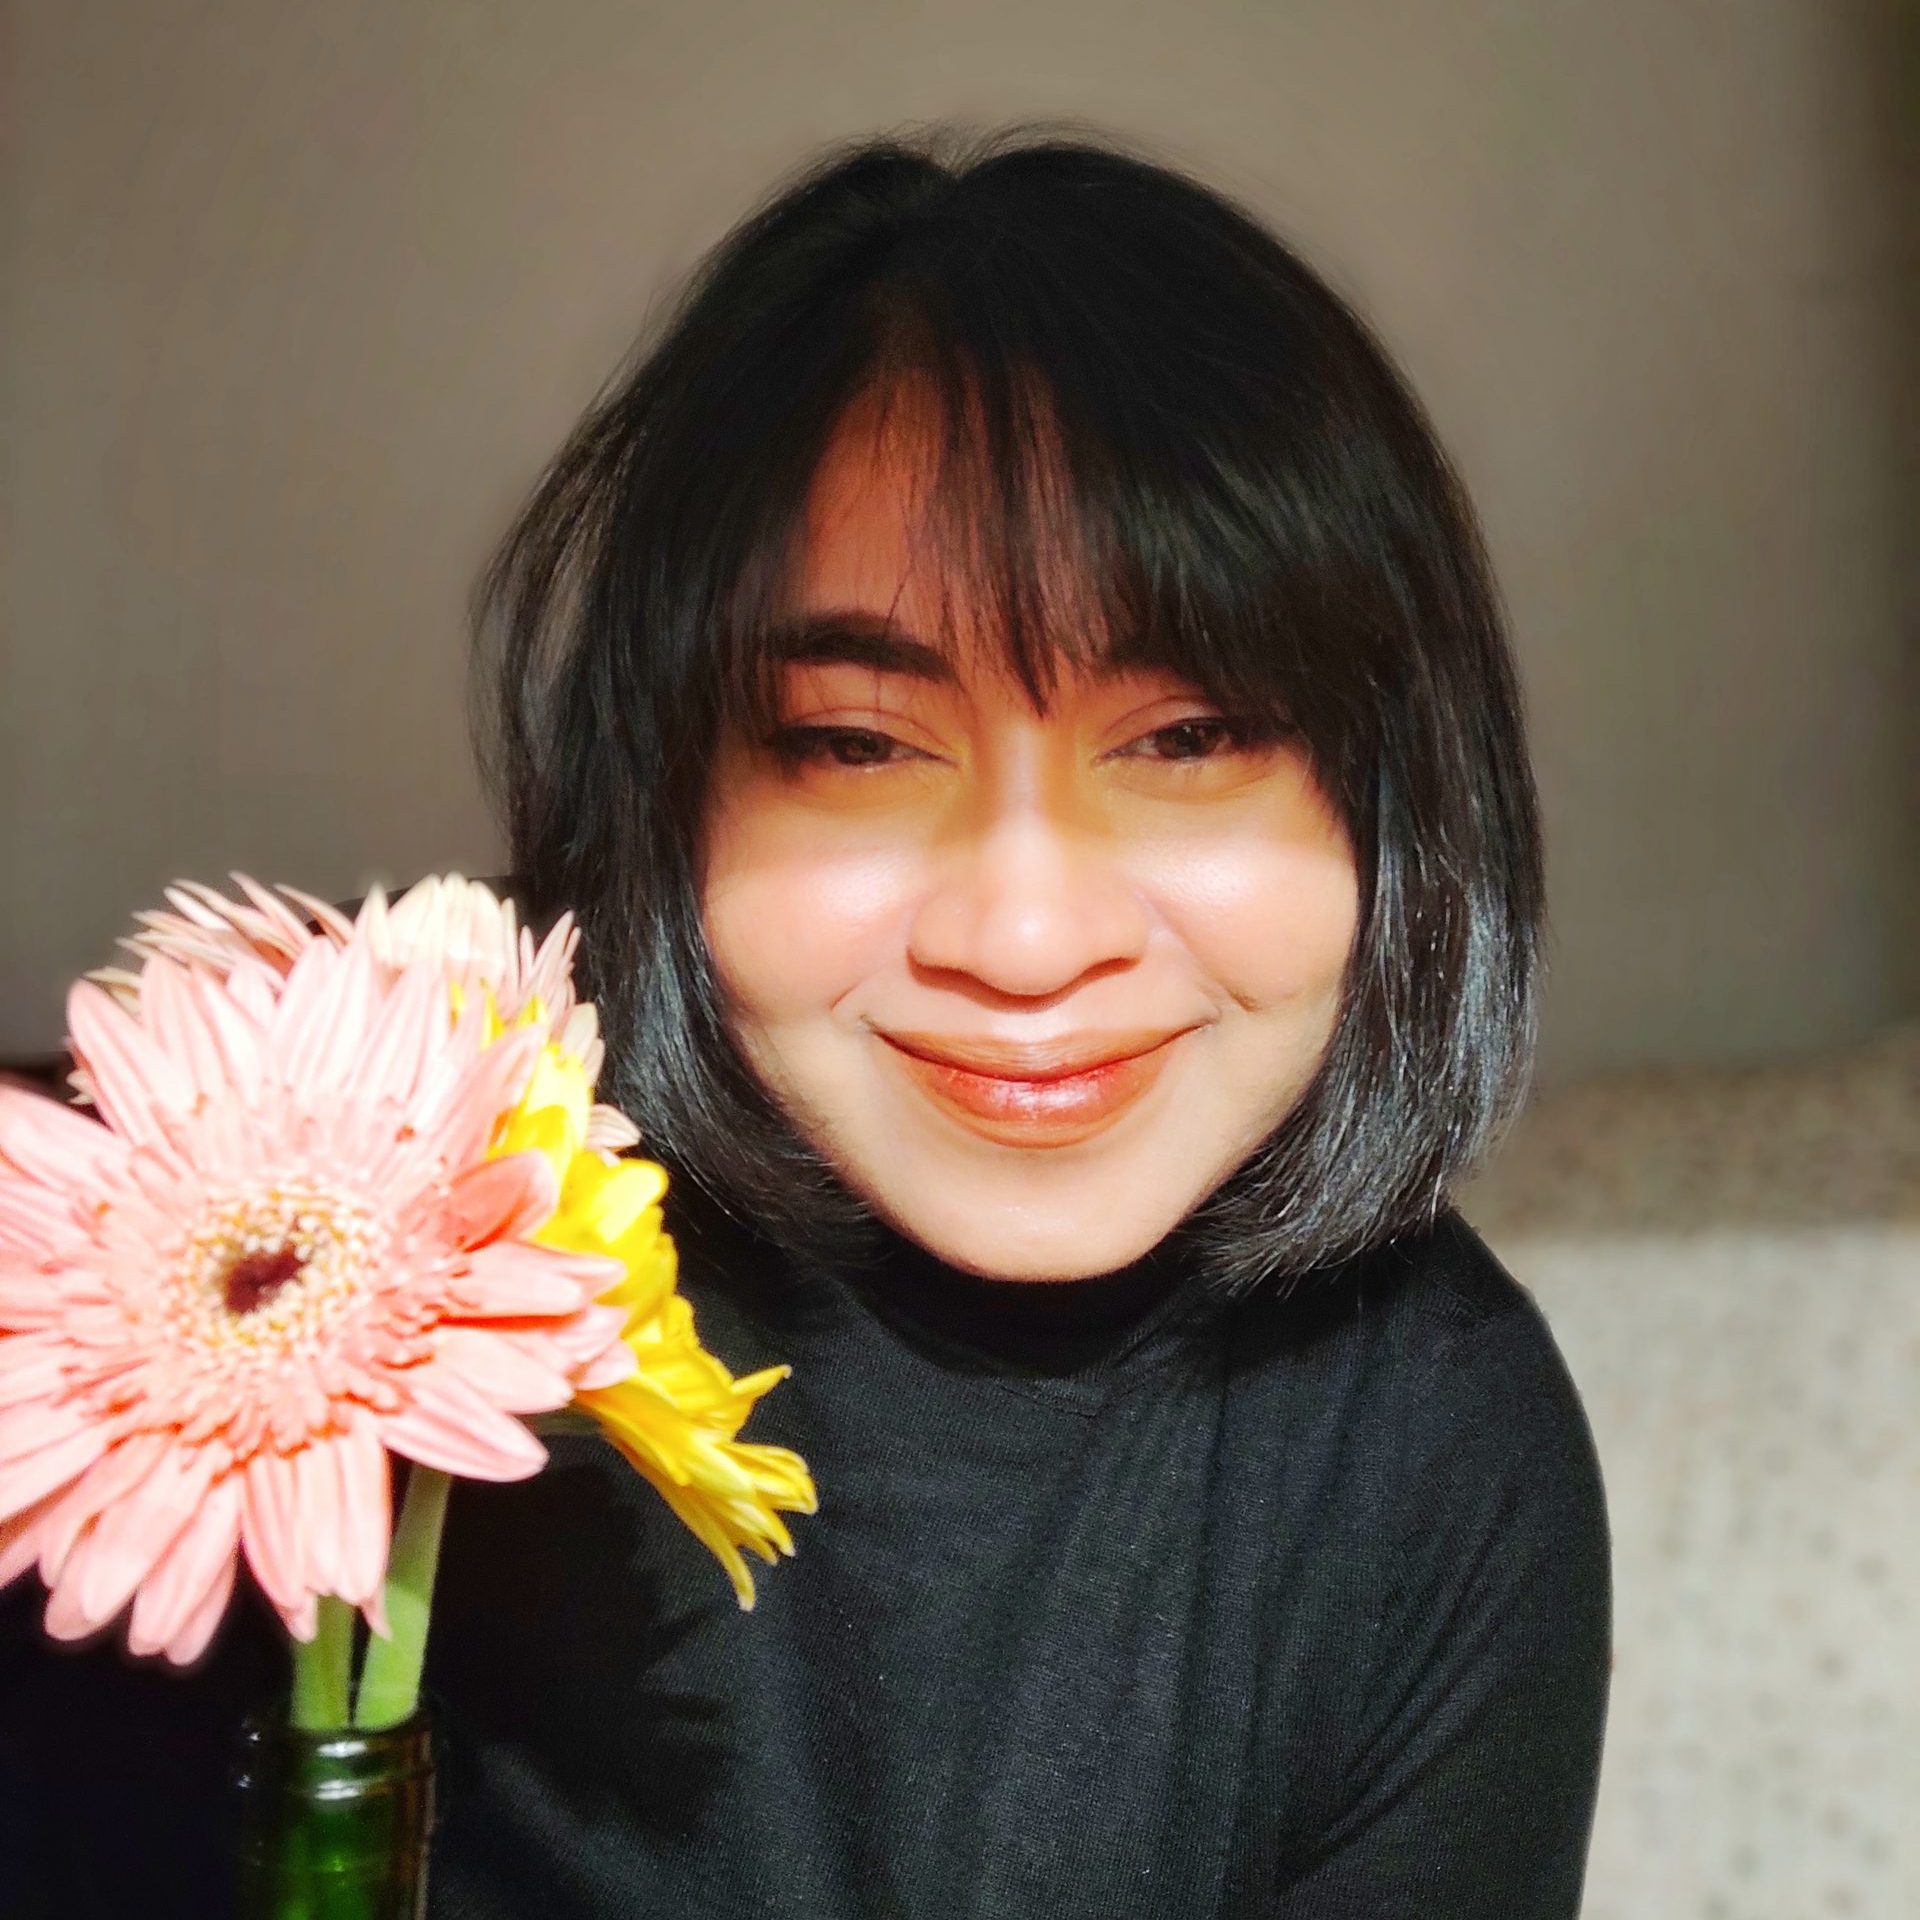 Photo of Moumita Das in a black top looking at the camera and smiling. She is indoors next to a bouquet of large flowers